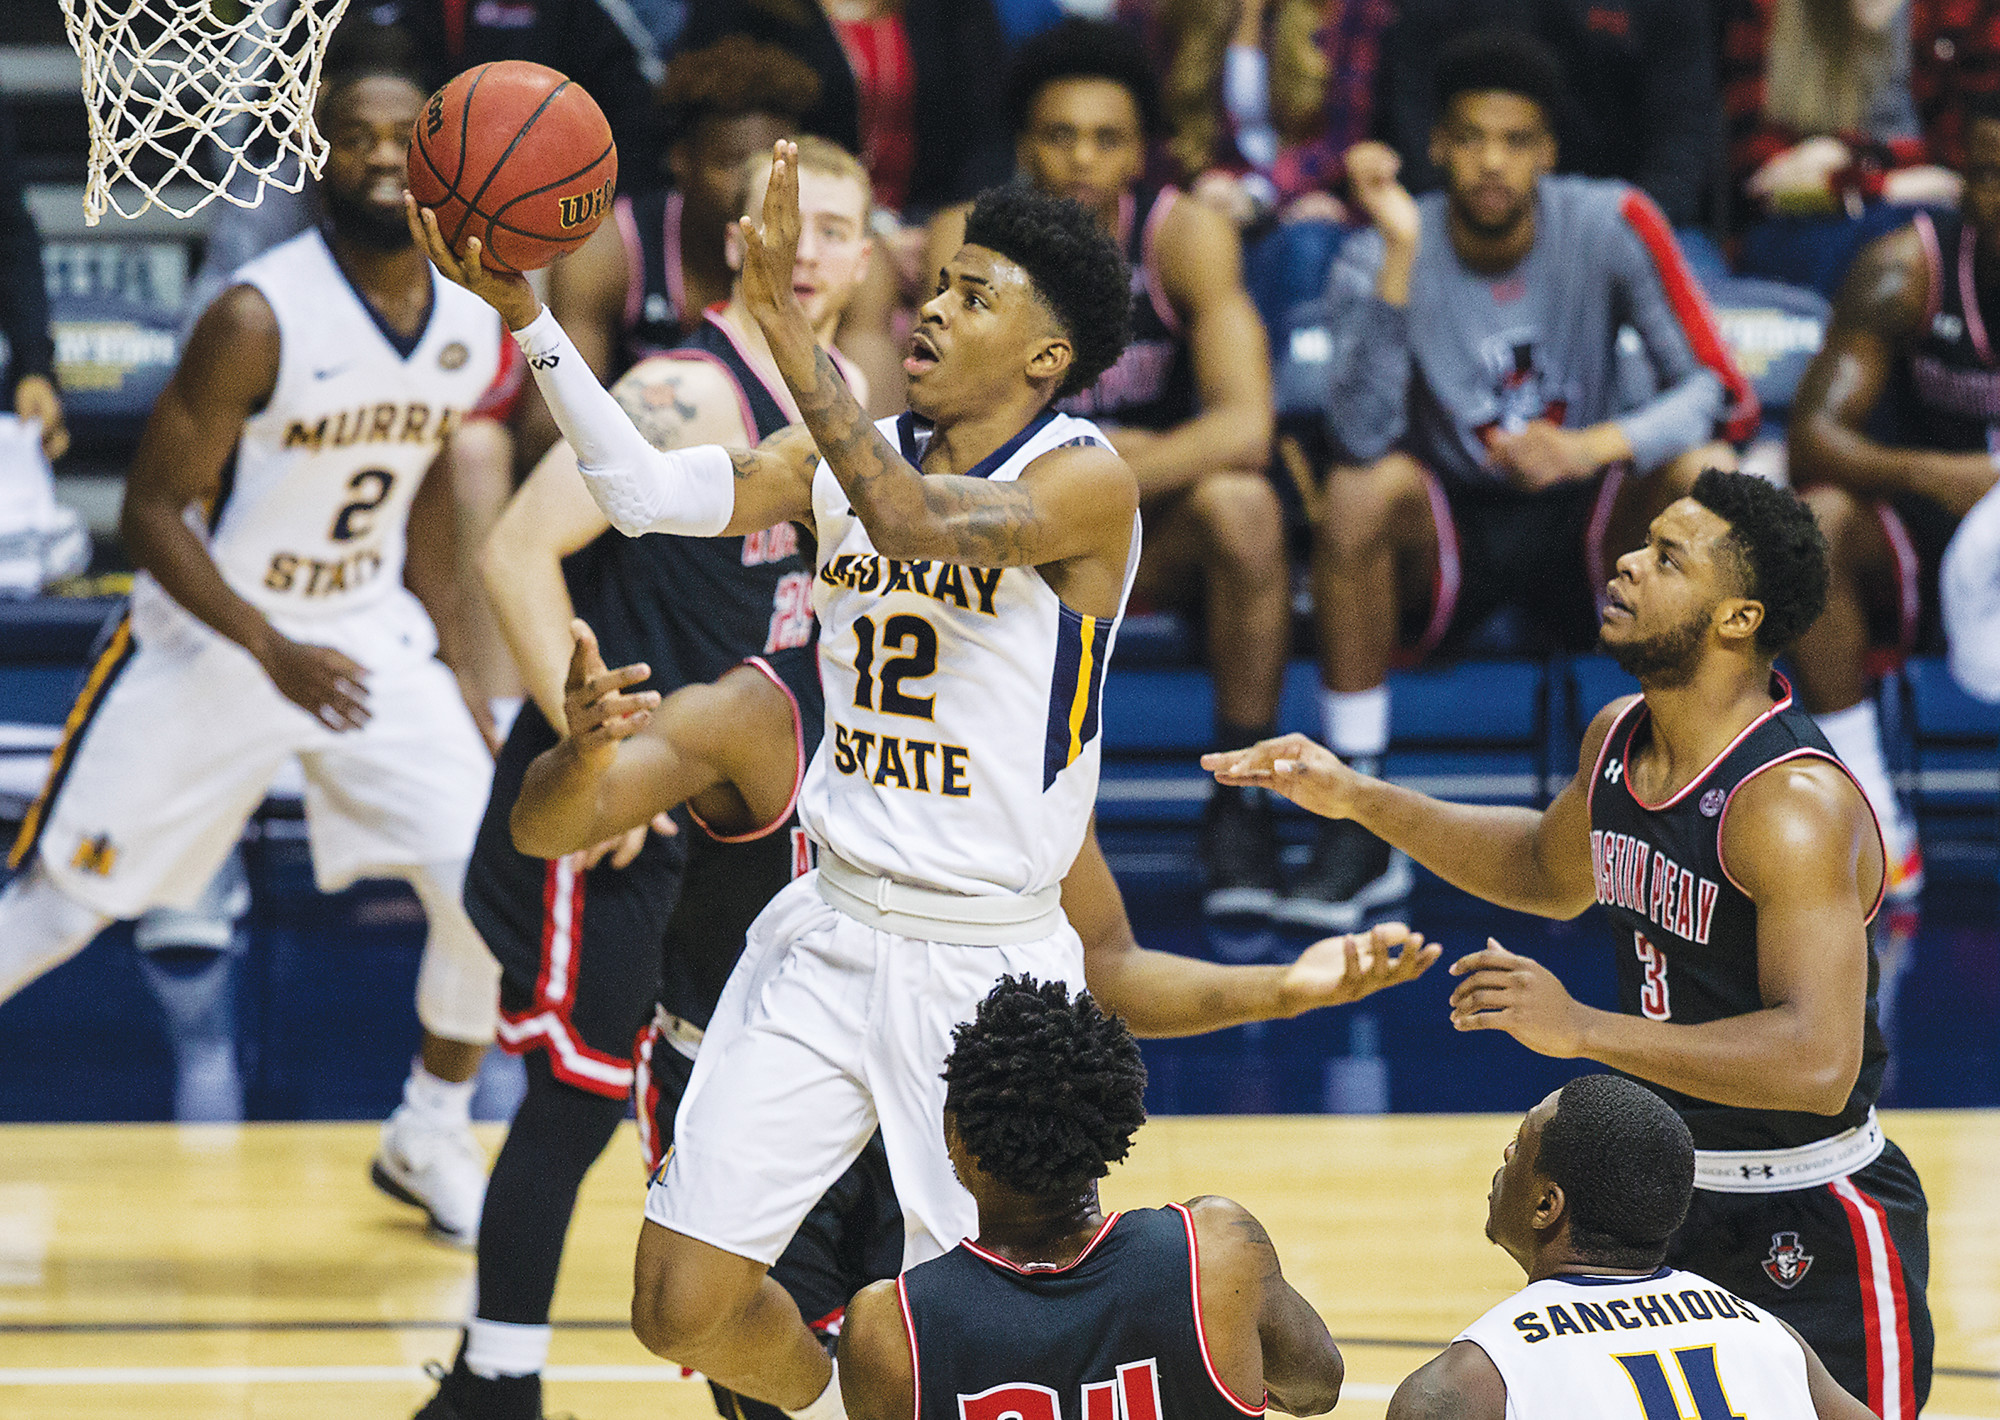 THE ASSOCIATED PRESS  Former Crestwood High School standout Ja Morant (12) will be playing in the NCAA tournament as a freshman after helping Murray State win the Ohio Valley Conference tournament on Saturday.